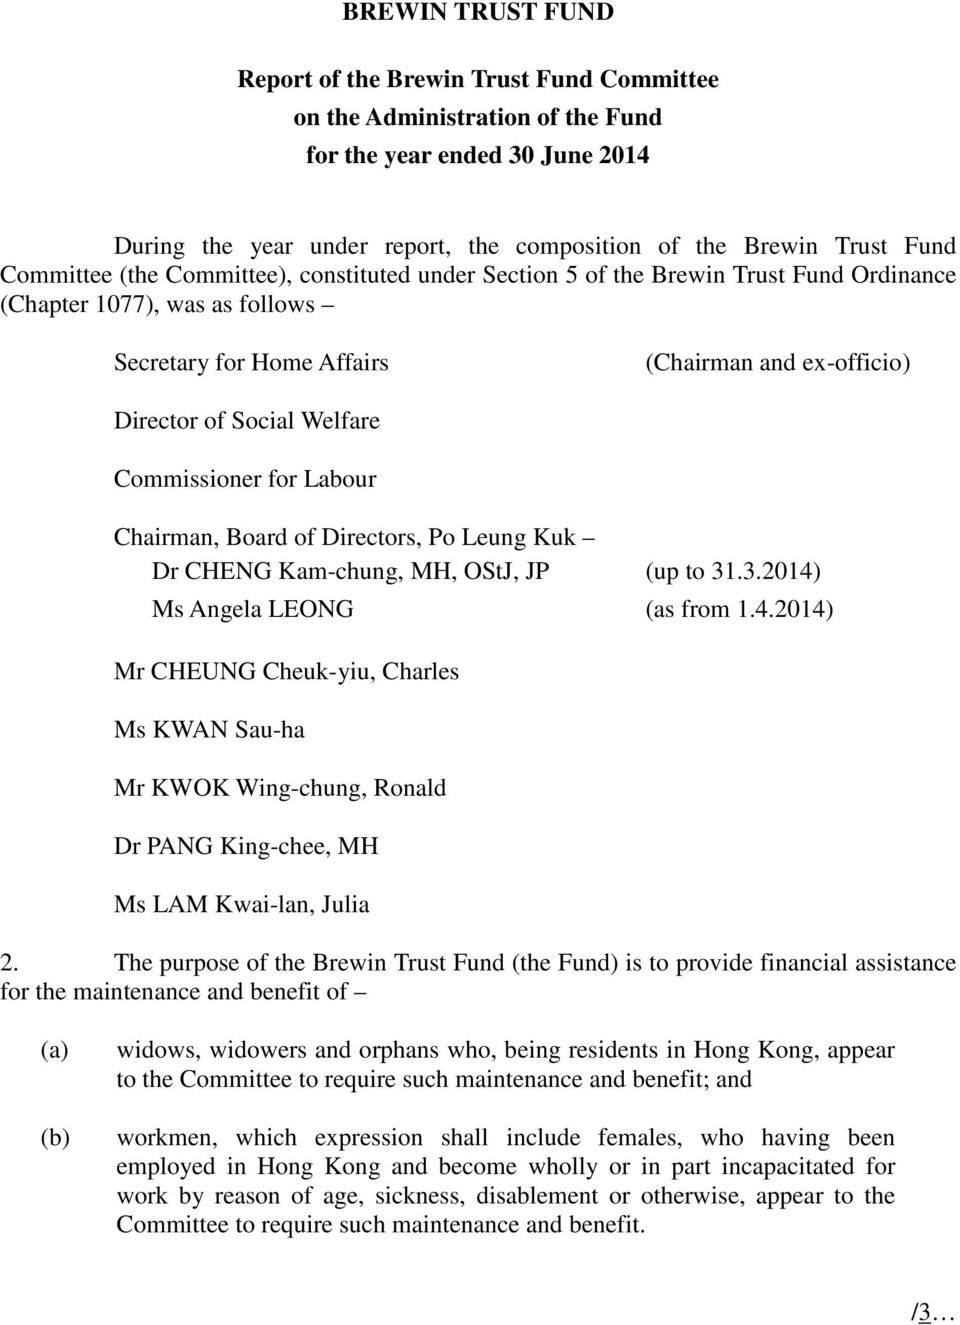 Welfare Commissioner for Labour Chairman, Board of Directors, Po Leung Kuk Dr CHENG Kam-chung, MH, OStJ, JP (up to 31.3.2014)